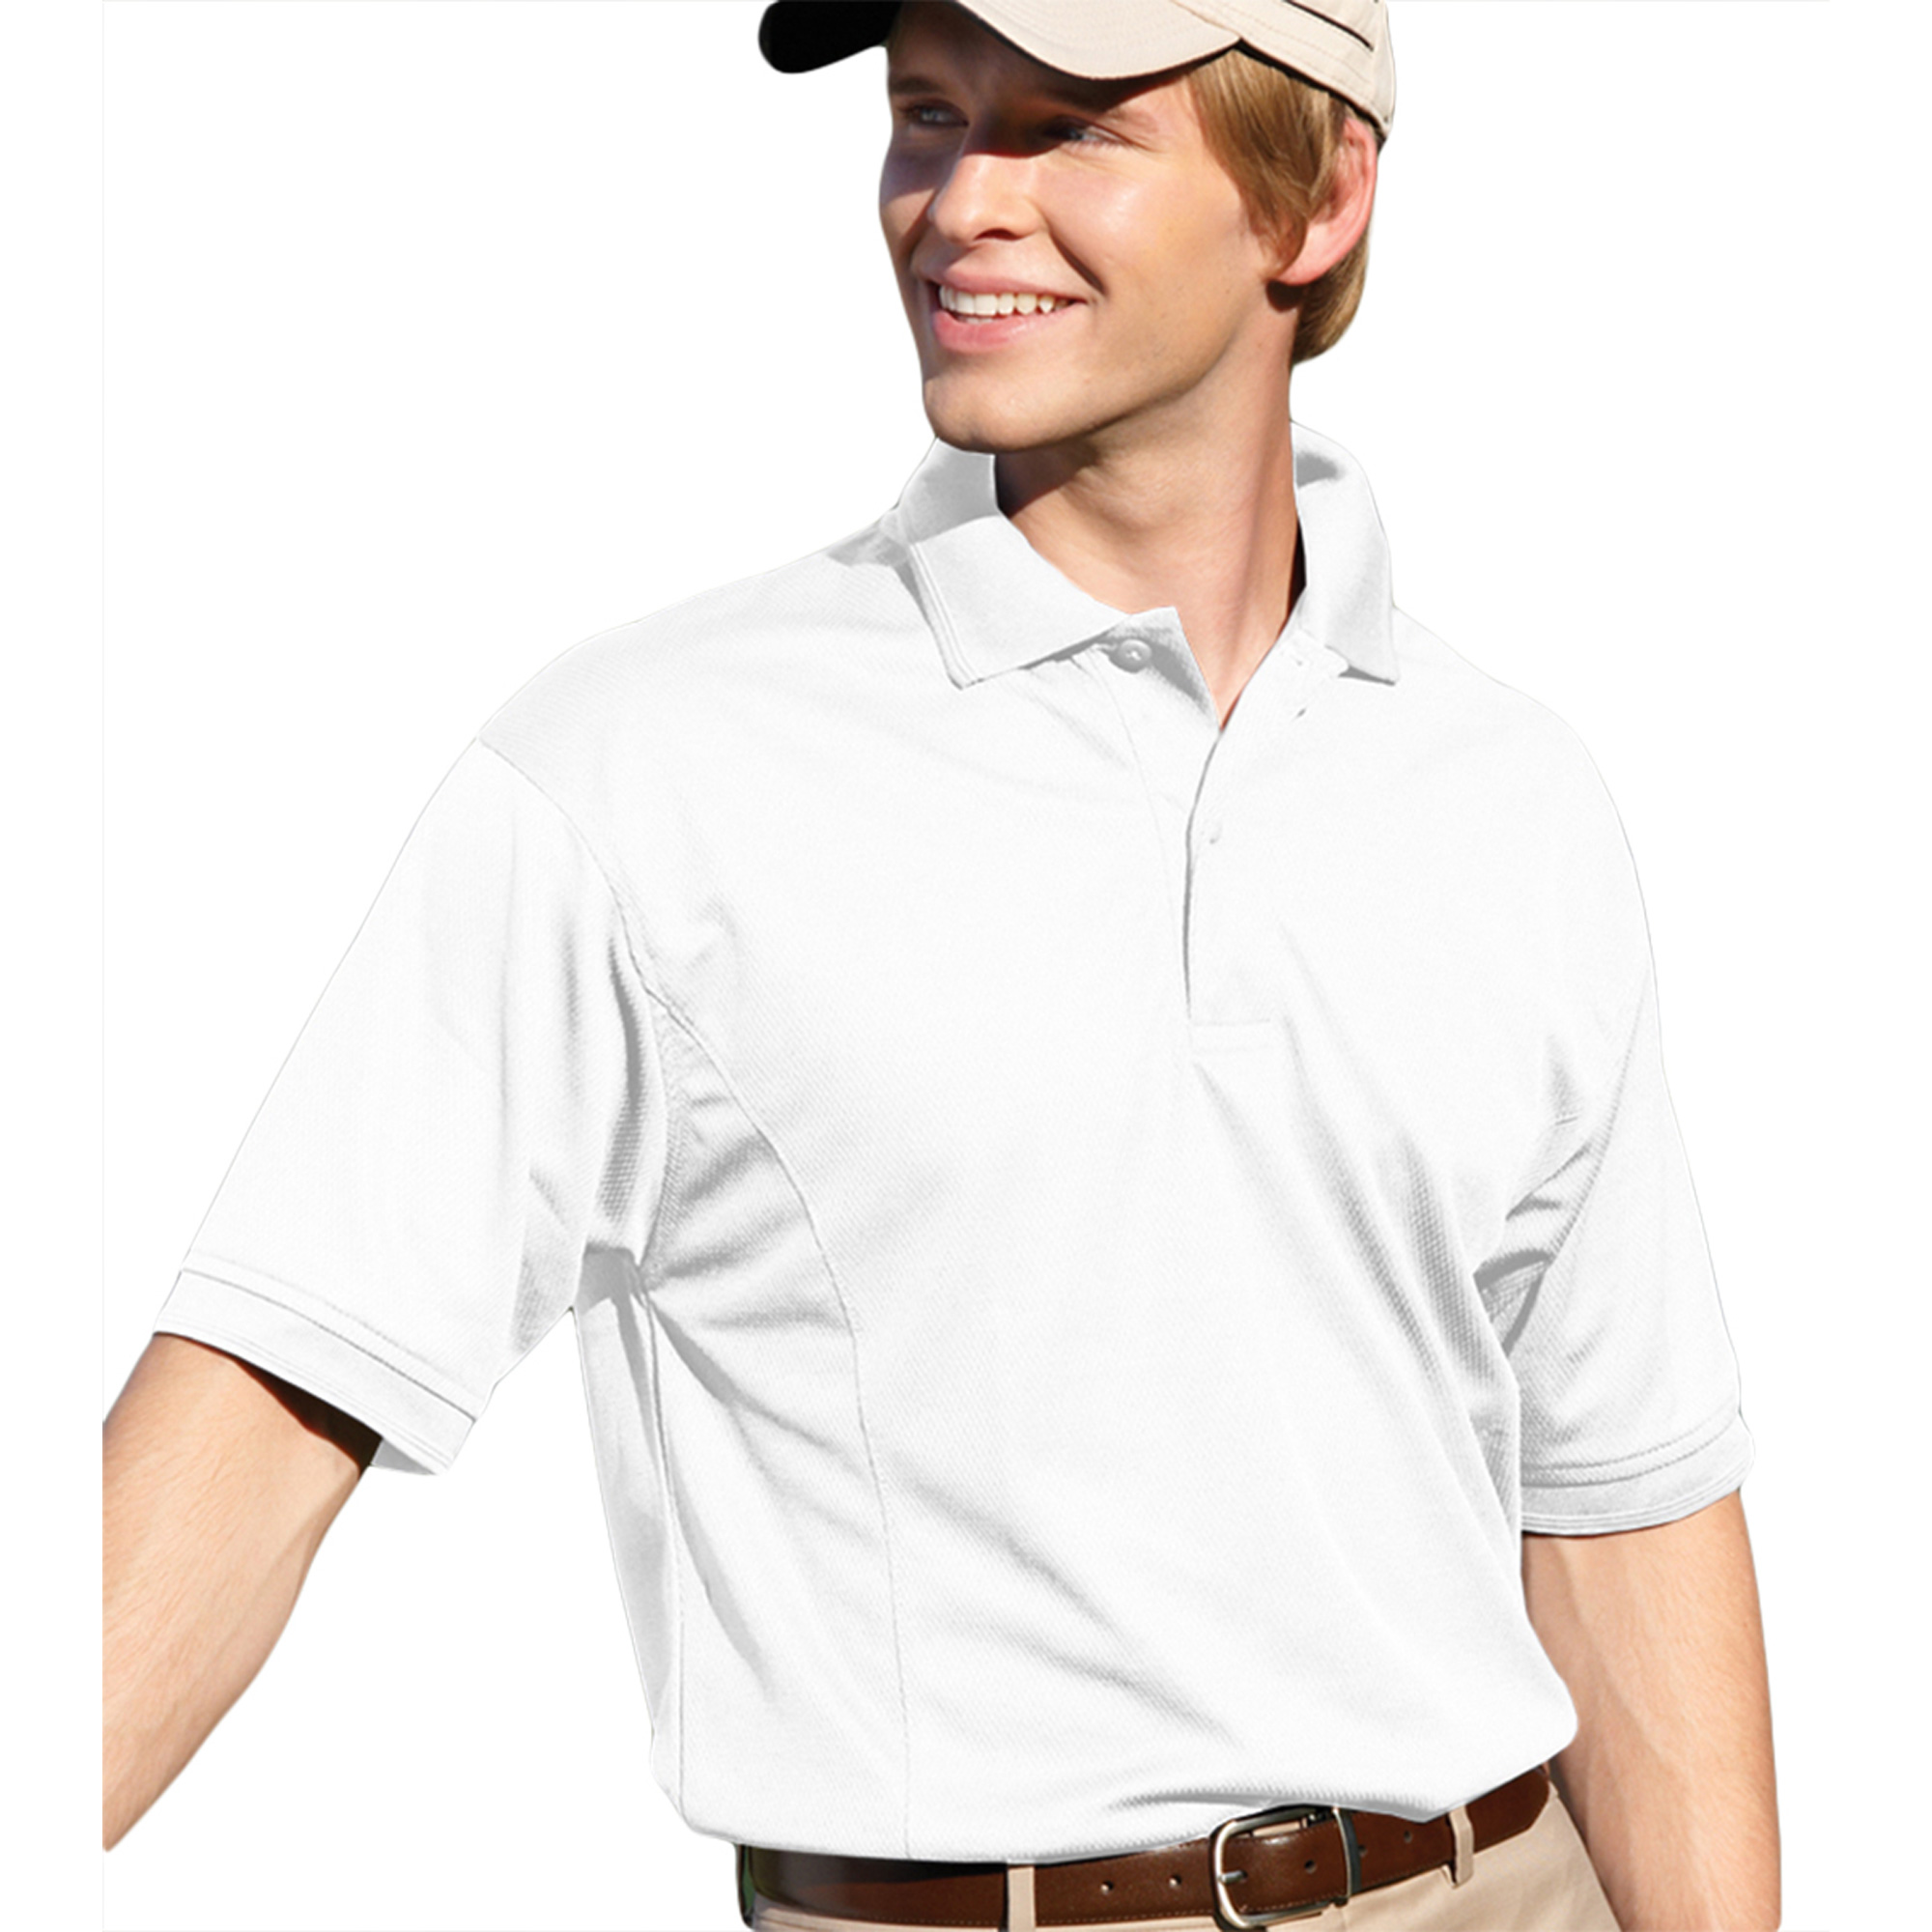 00820599181085 MENS PERFORMANCE GOLF SHIRT 2800 BLACK 4XL